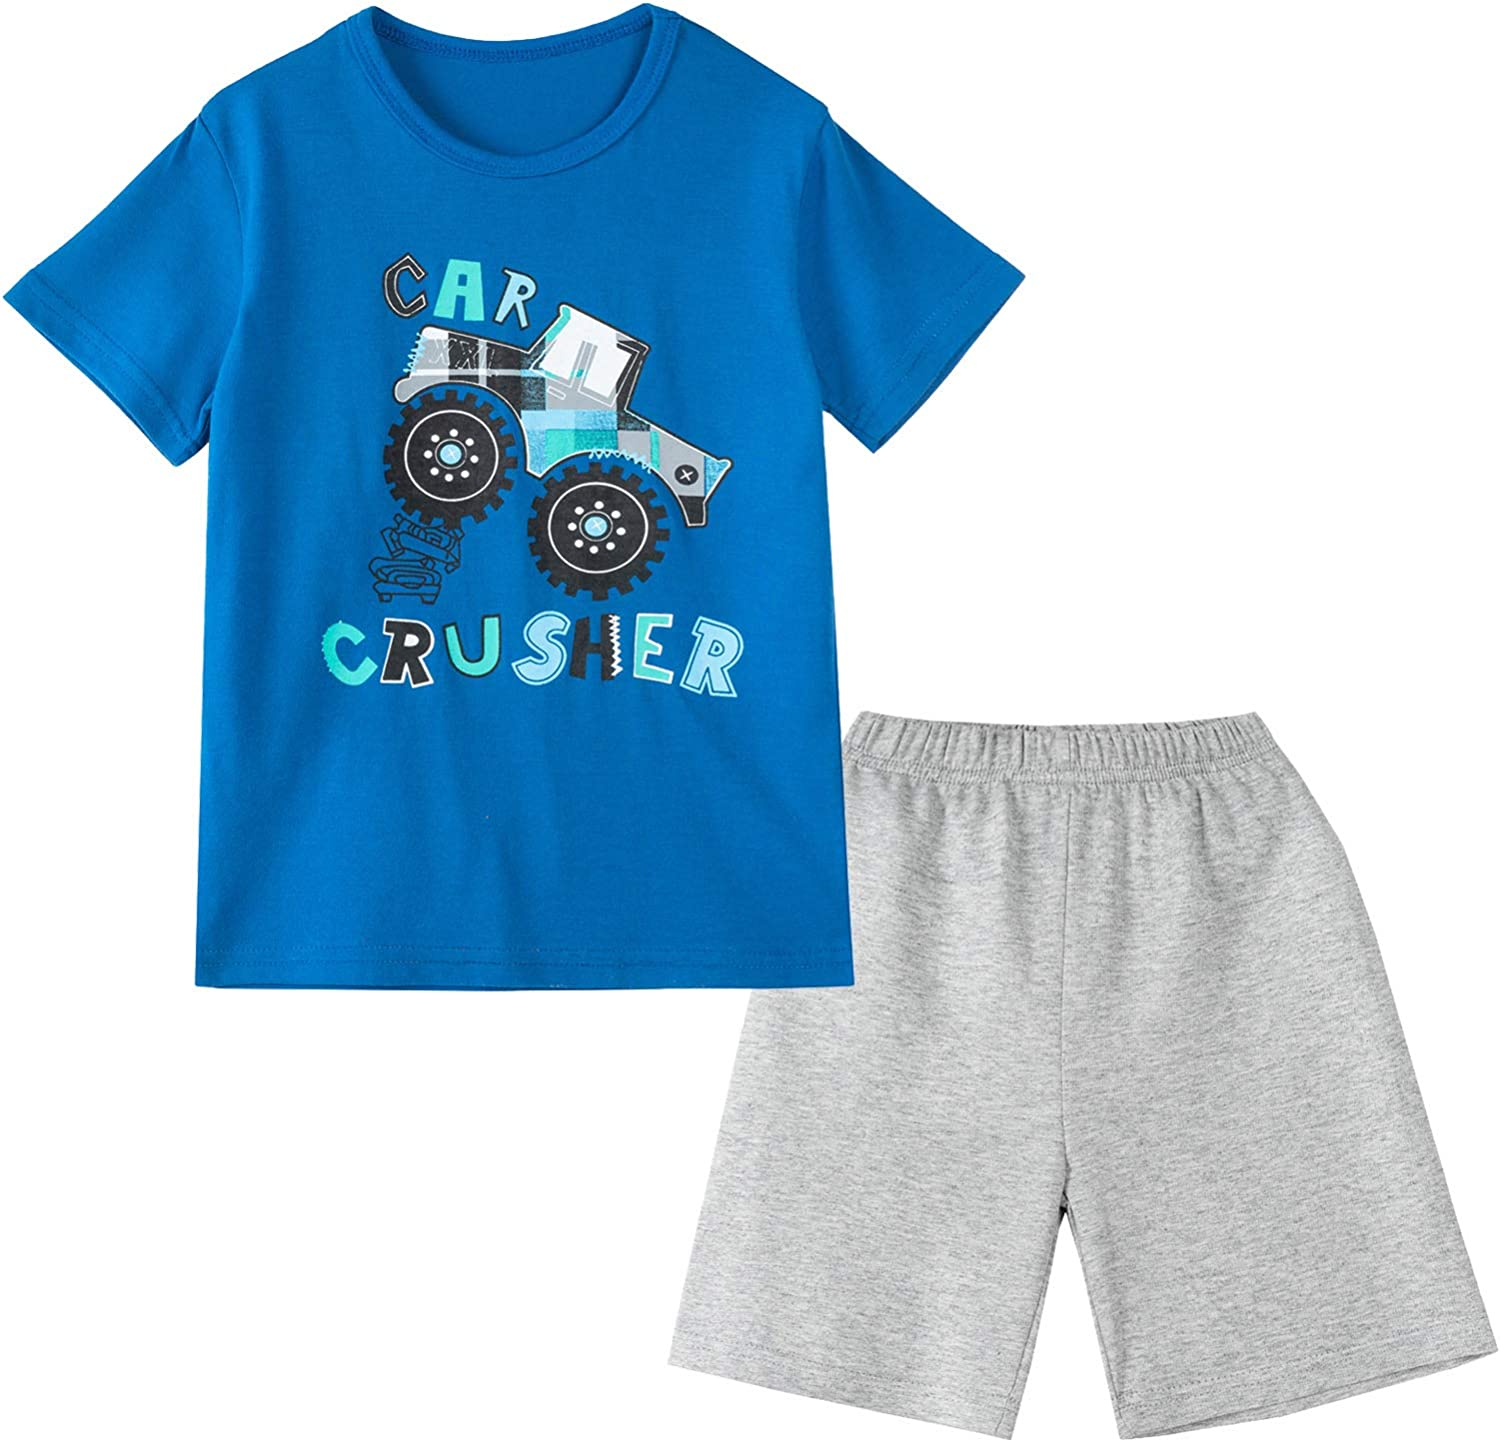 SUNFEID Excellence Toddler Free shipping on posting reviews Boys Shorts Set Cloth Summer Sleeve Short Cotton